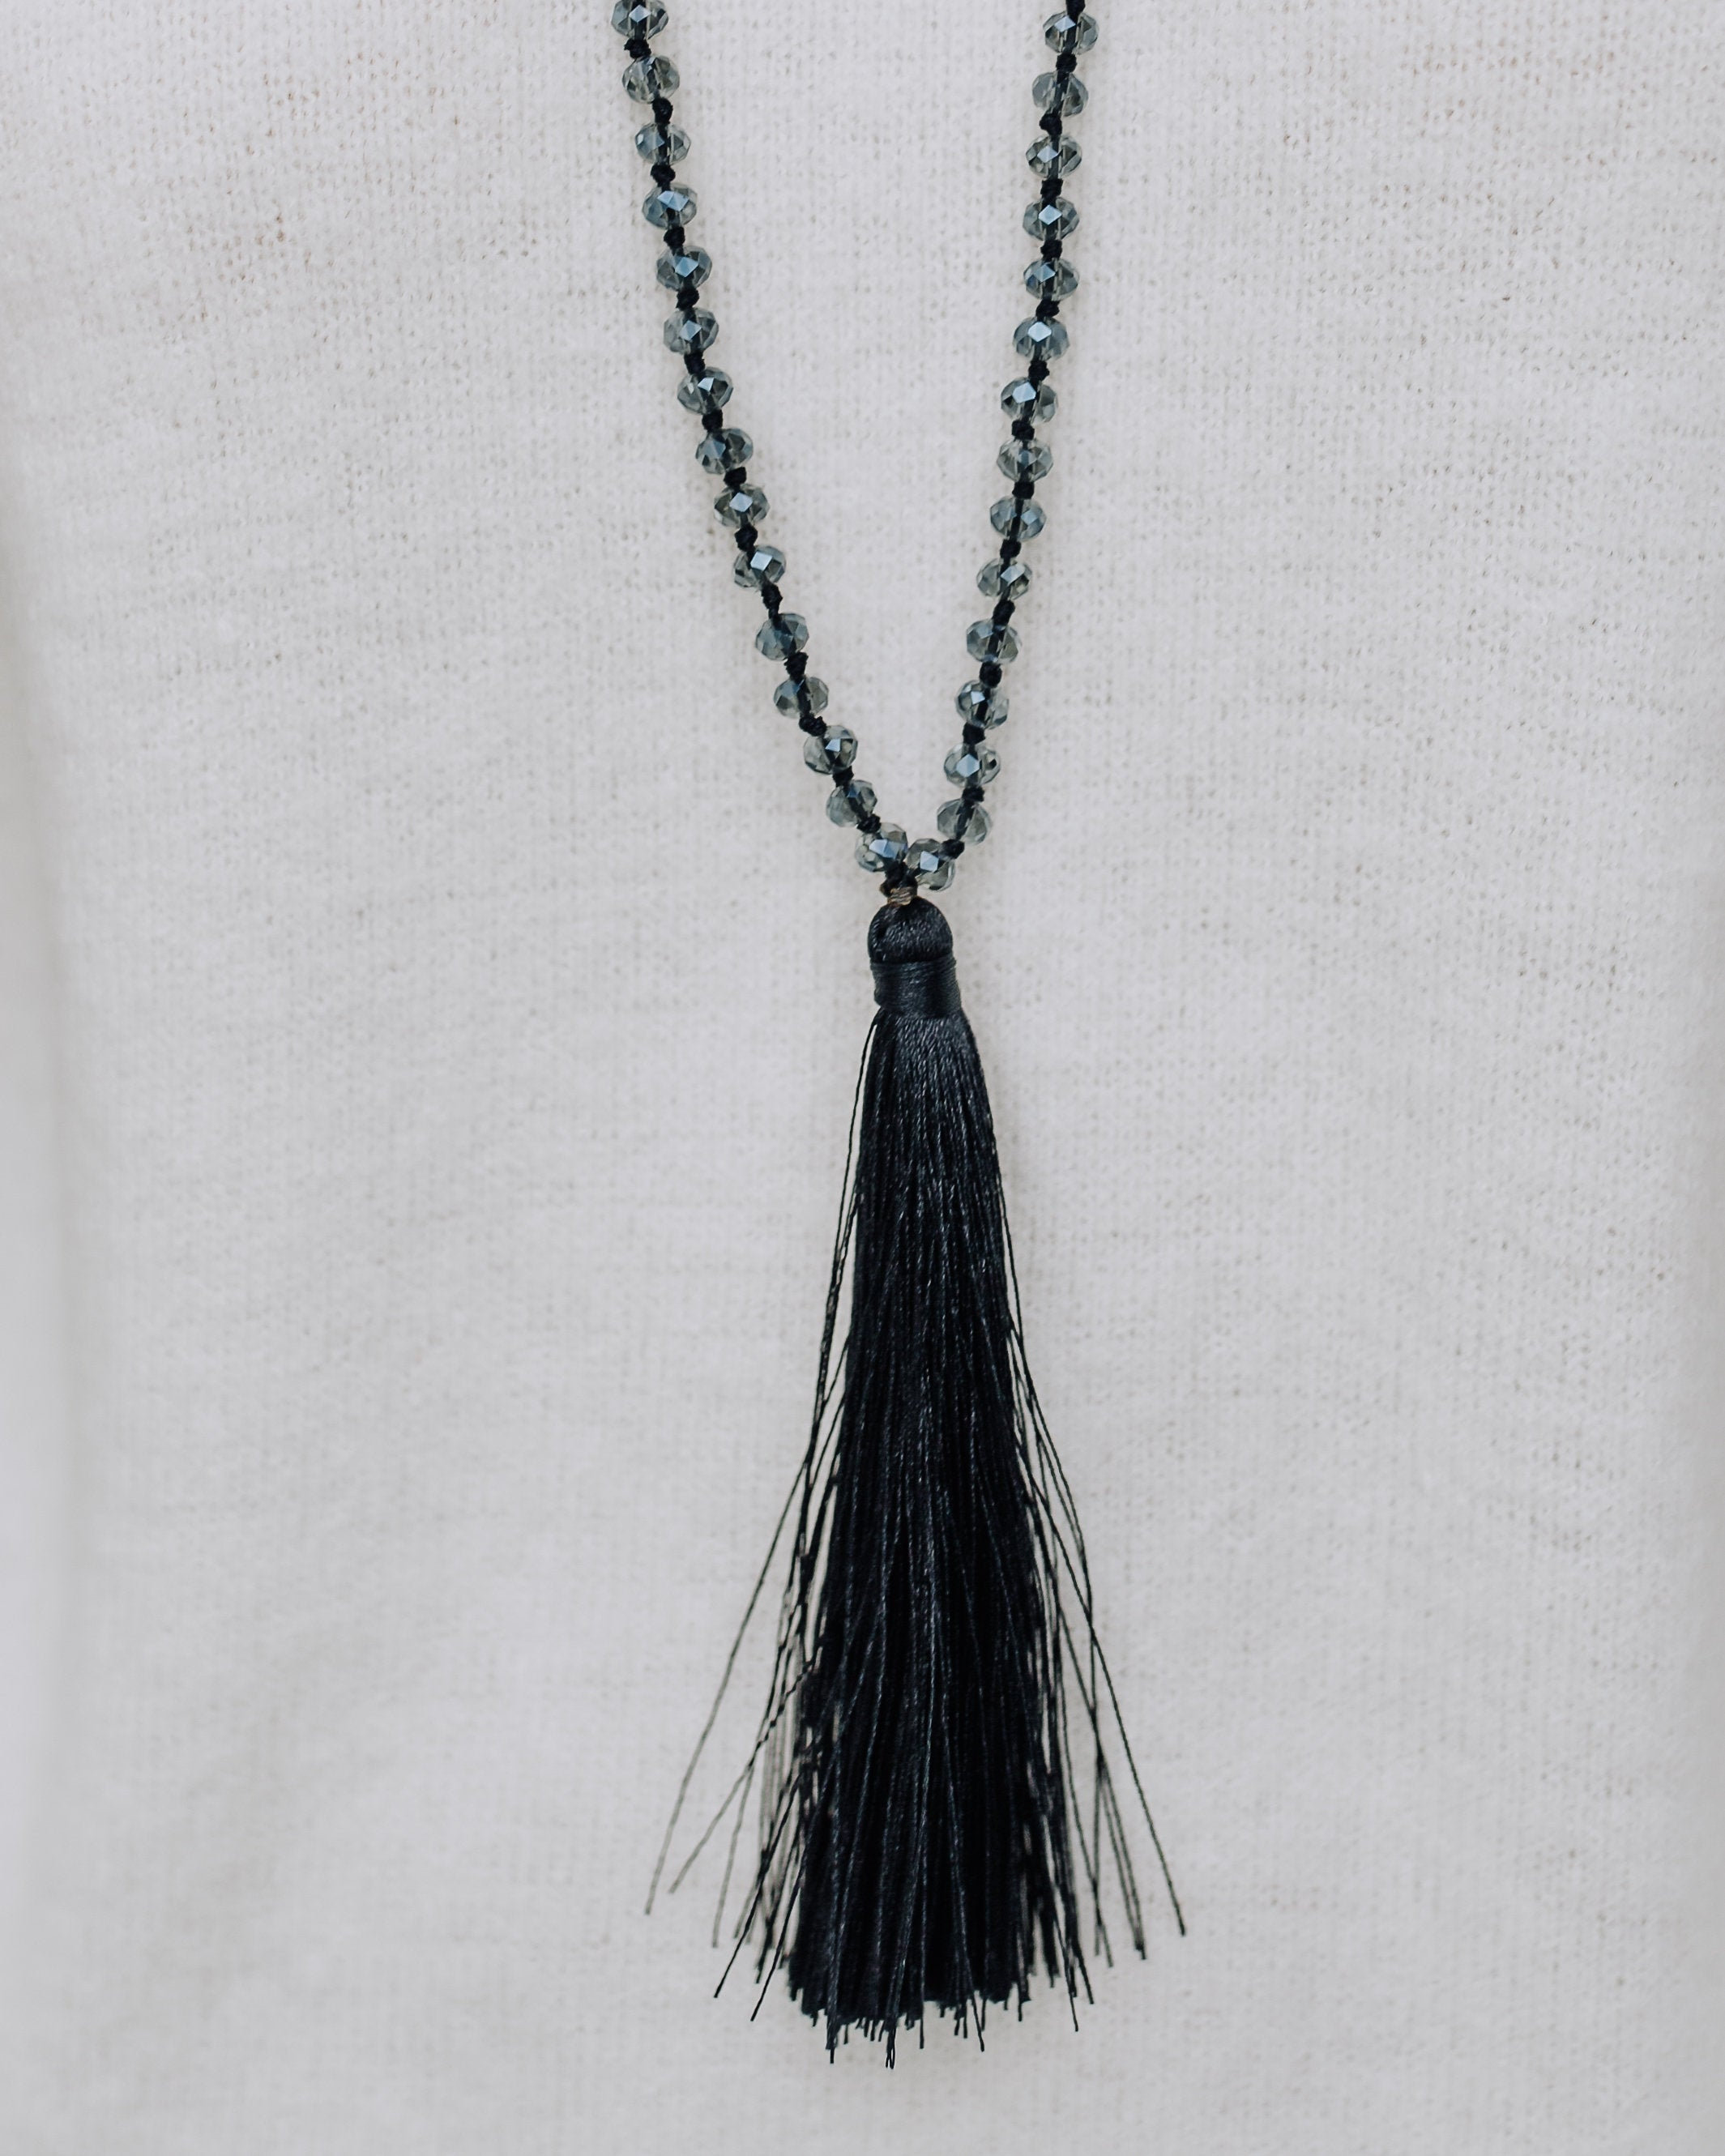 blk tassel views with zenzii lattice more necklace pendant prev wholesale resin